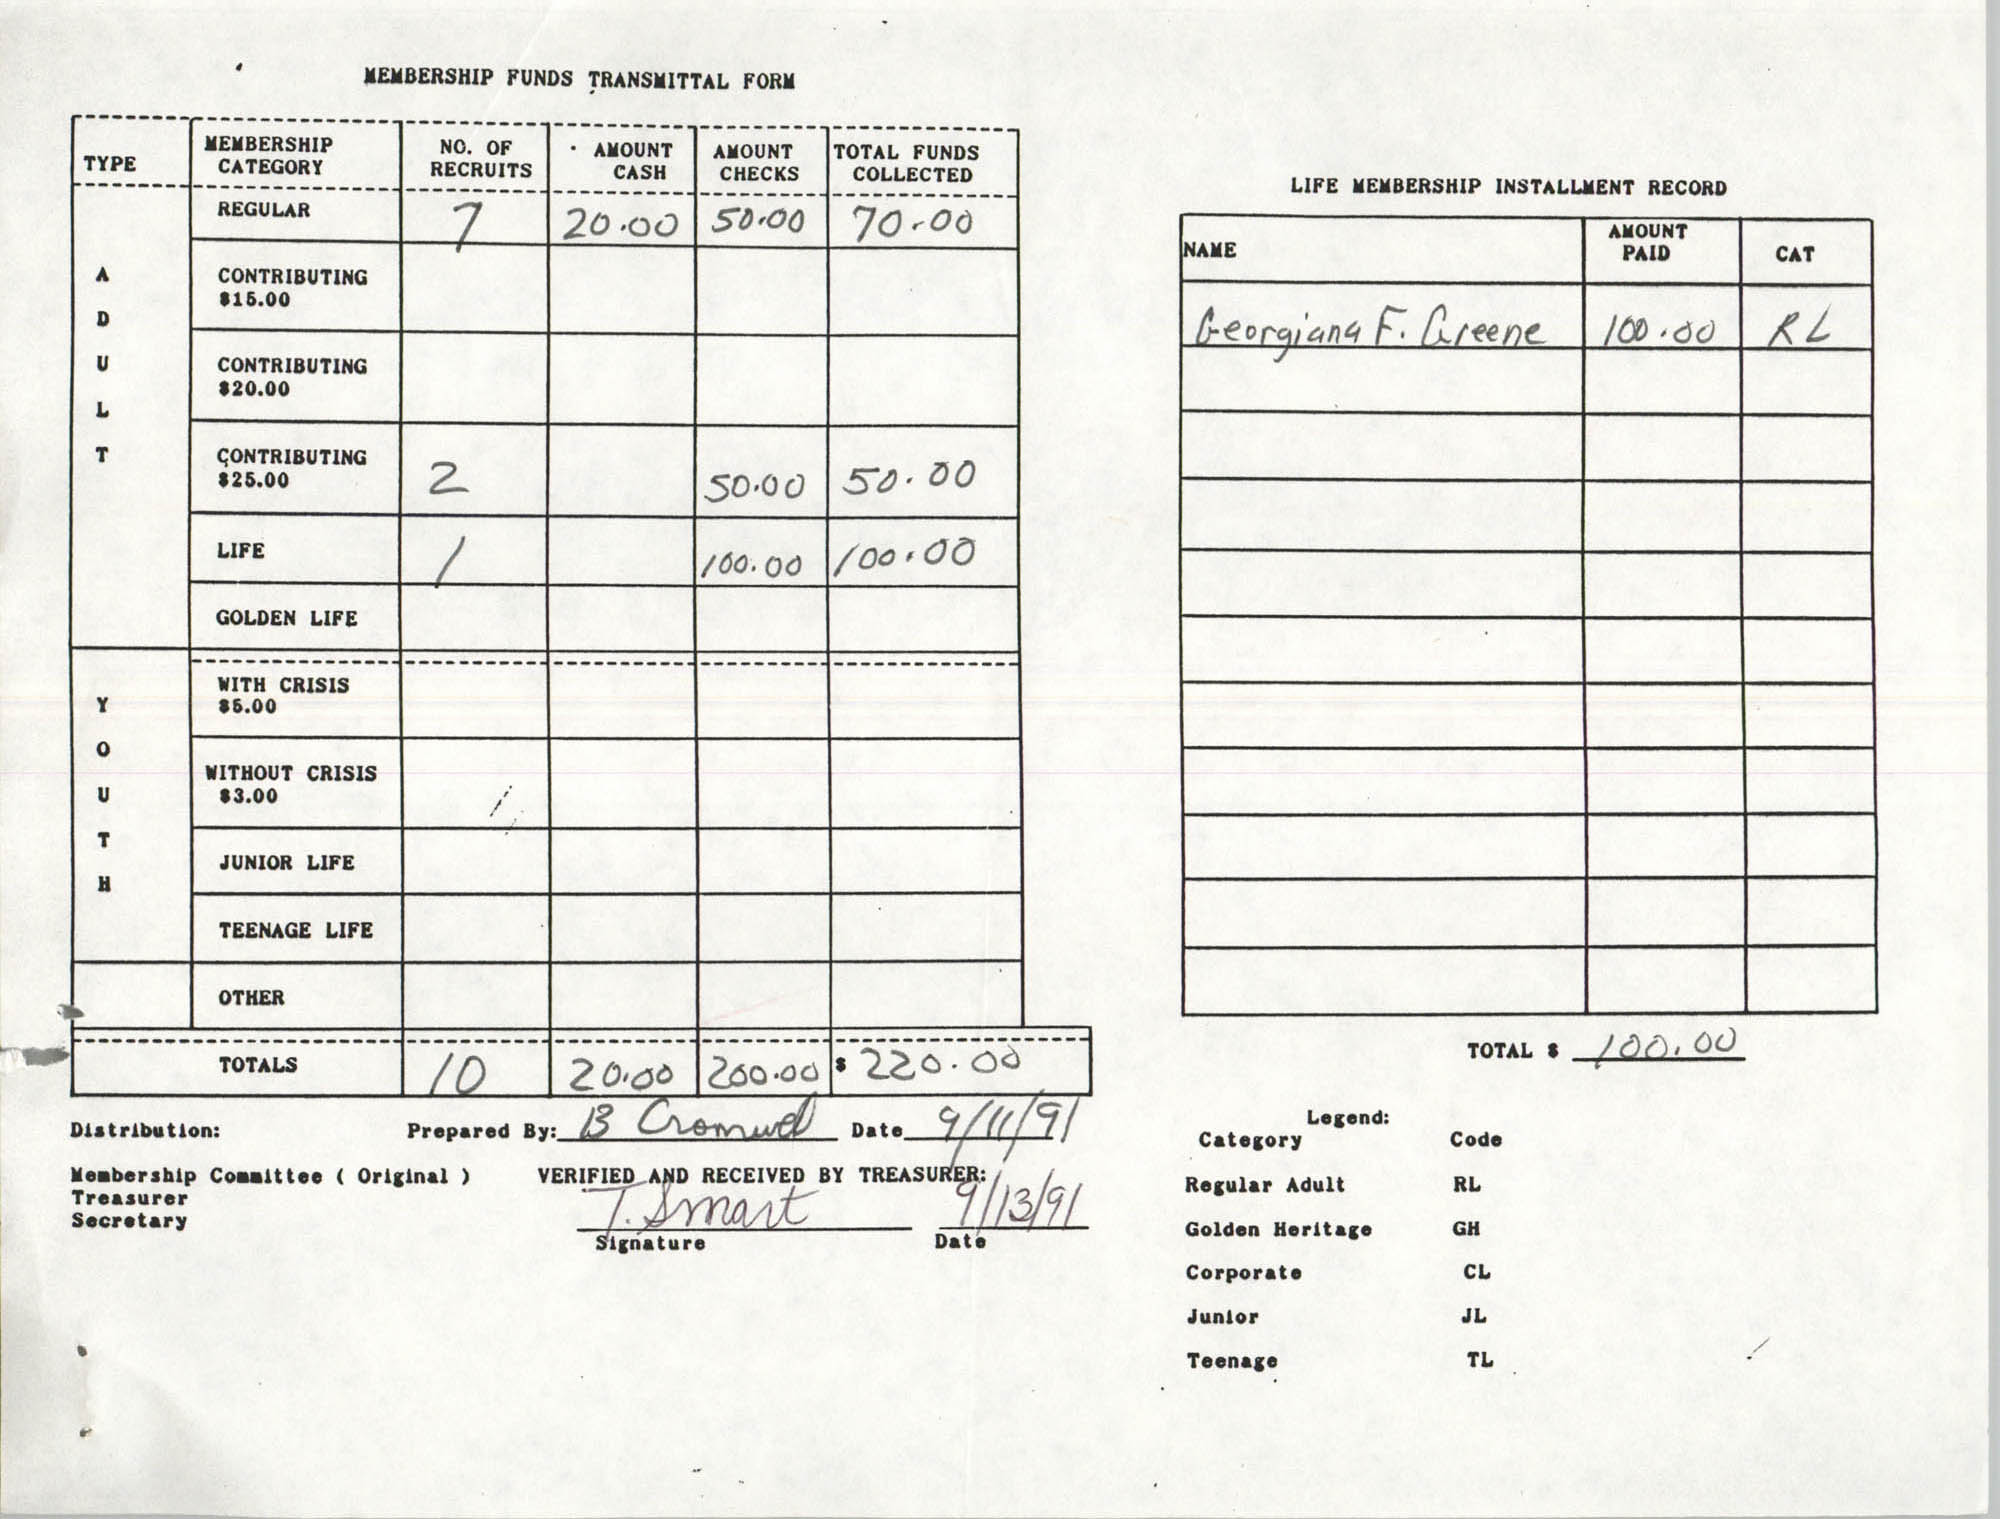 Charleston Branch of the NAACP Funds Transmittal Forms, September 1991, Page 33